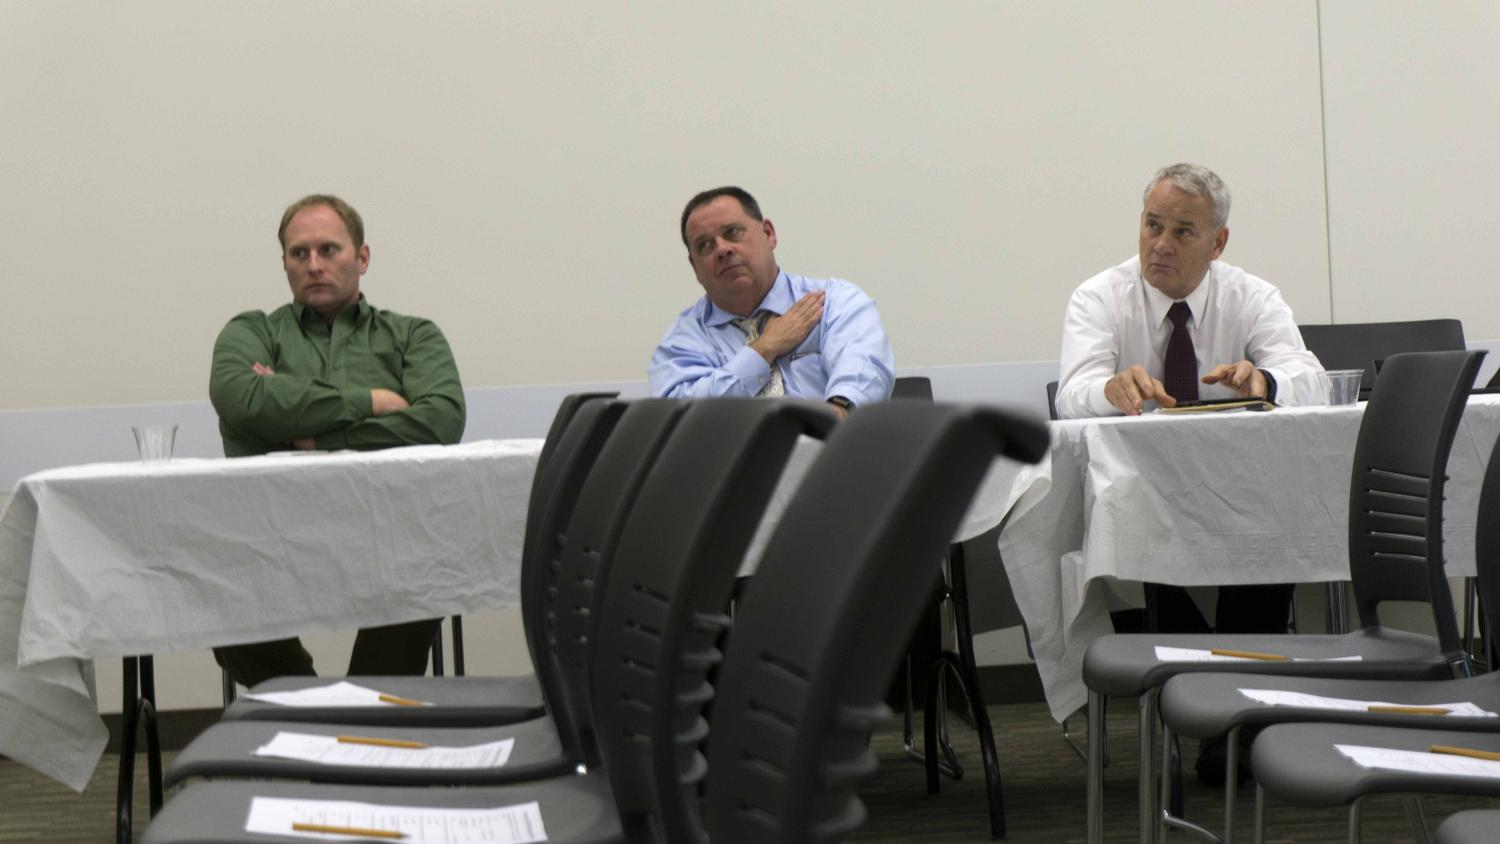 Injerd (first from right), listening to a member of the panel